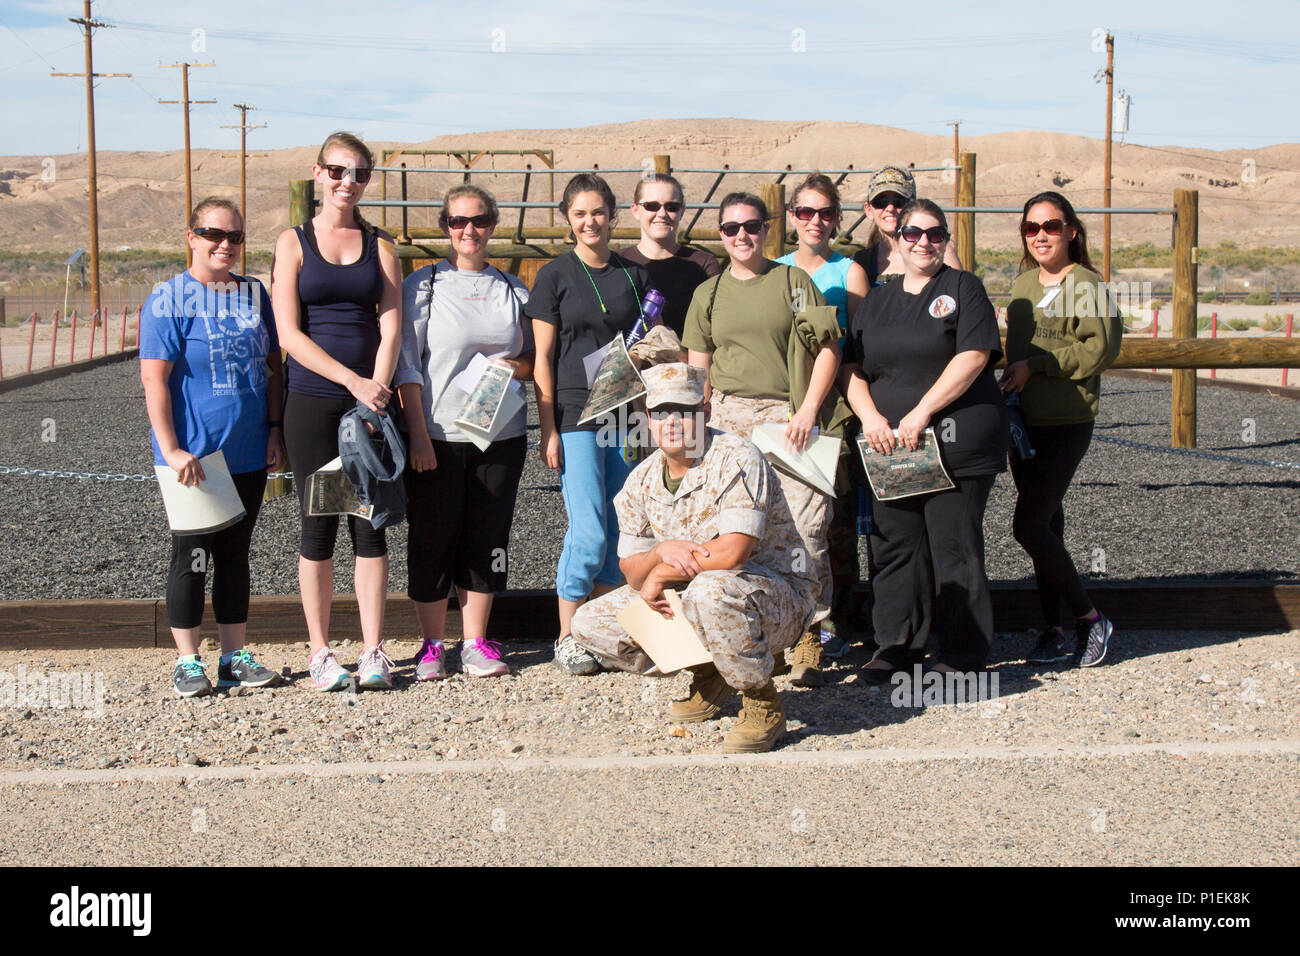 Chief Warrant Officer Jose Maynes poses for a group shot with the military spouses who participated in Jane Wayne Day aboard Marine Corps Logistics Base Barstow, Calif., Oct. 14. Military spouses left to right: Amanda Roselli, Ashley Ignatz, Jill Kovach, Miranda Williams, Casey Carlson, Erica King, Jessica Kenny, Jamie Teale, Jennifer Lee, Jennifer Wolef. - Stock Image